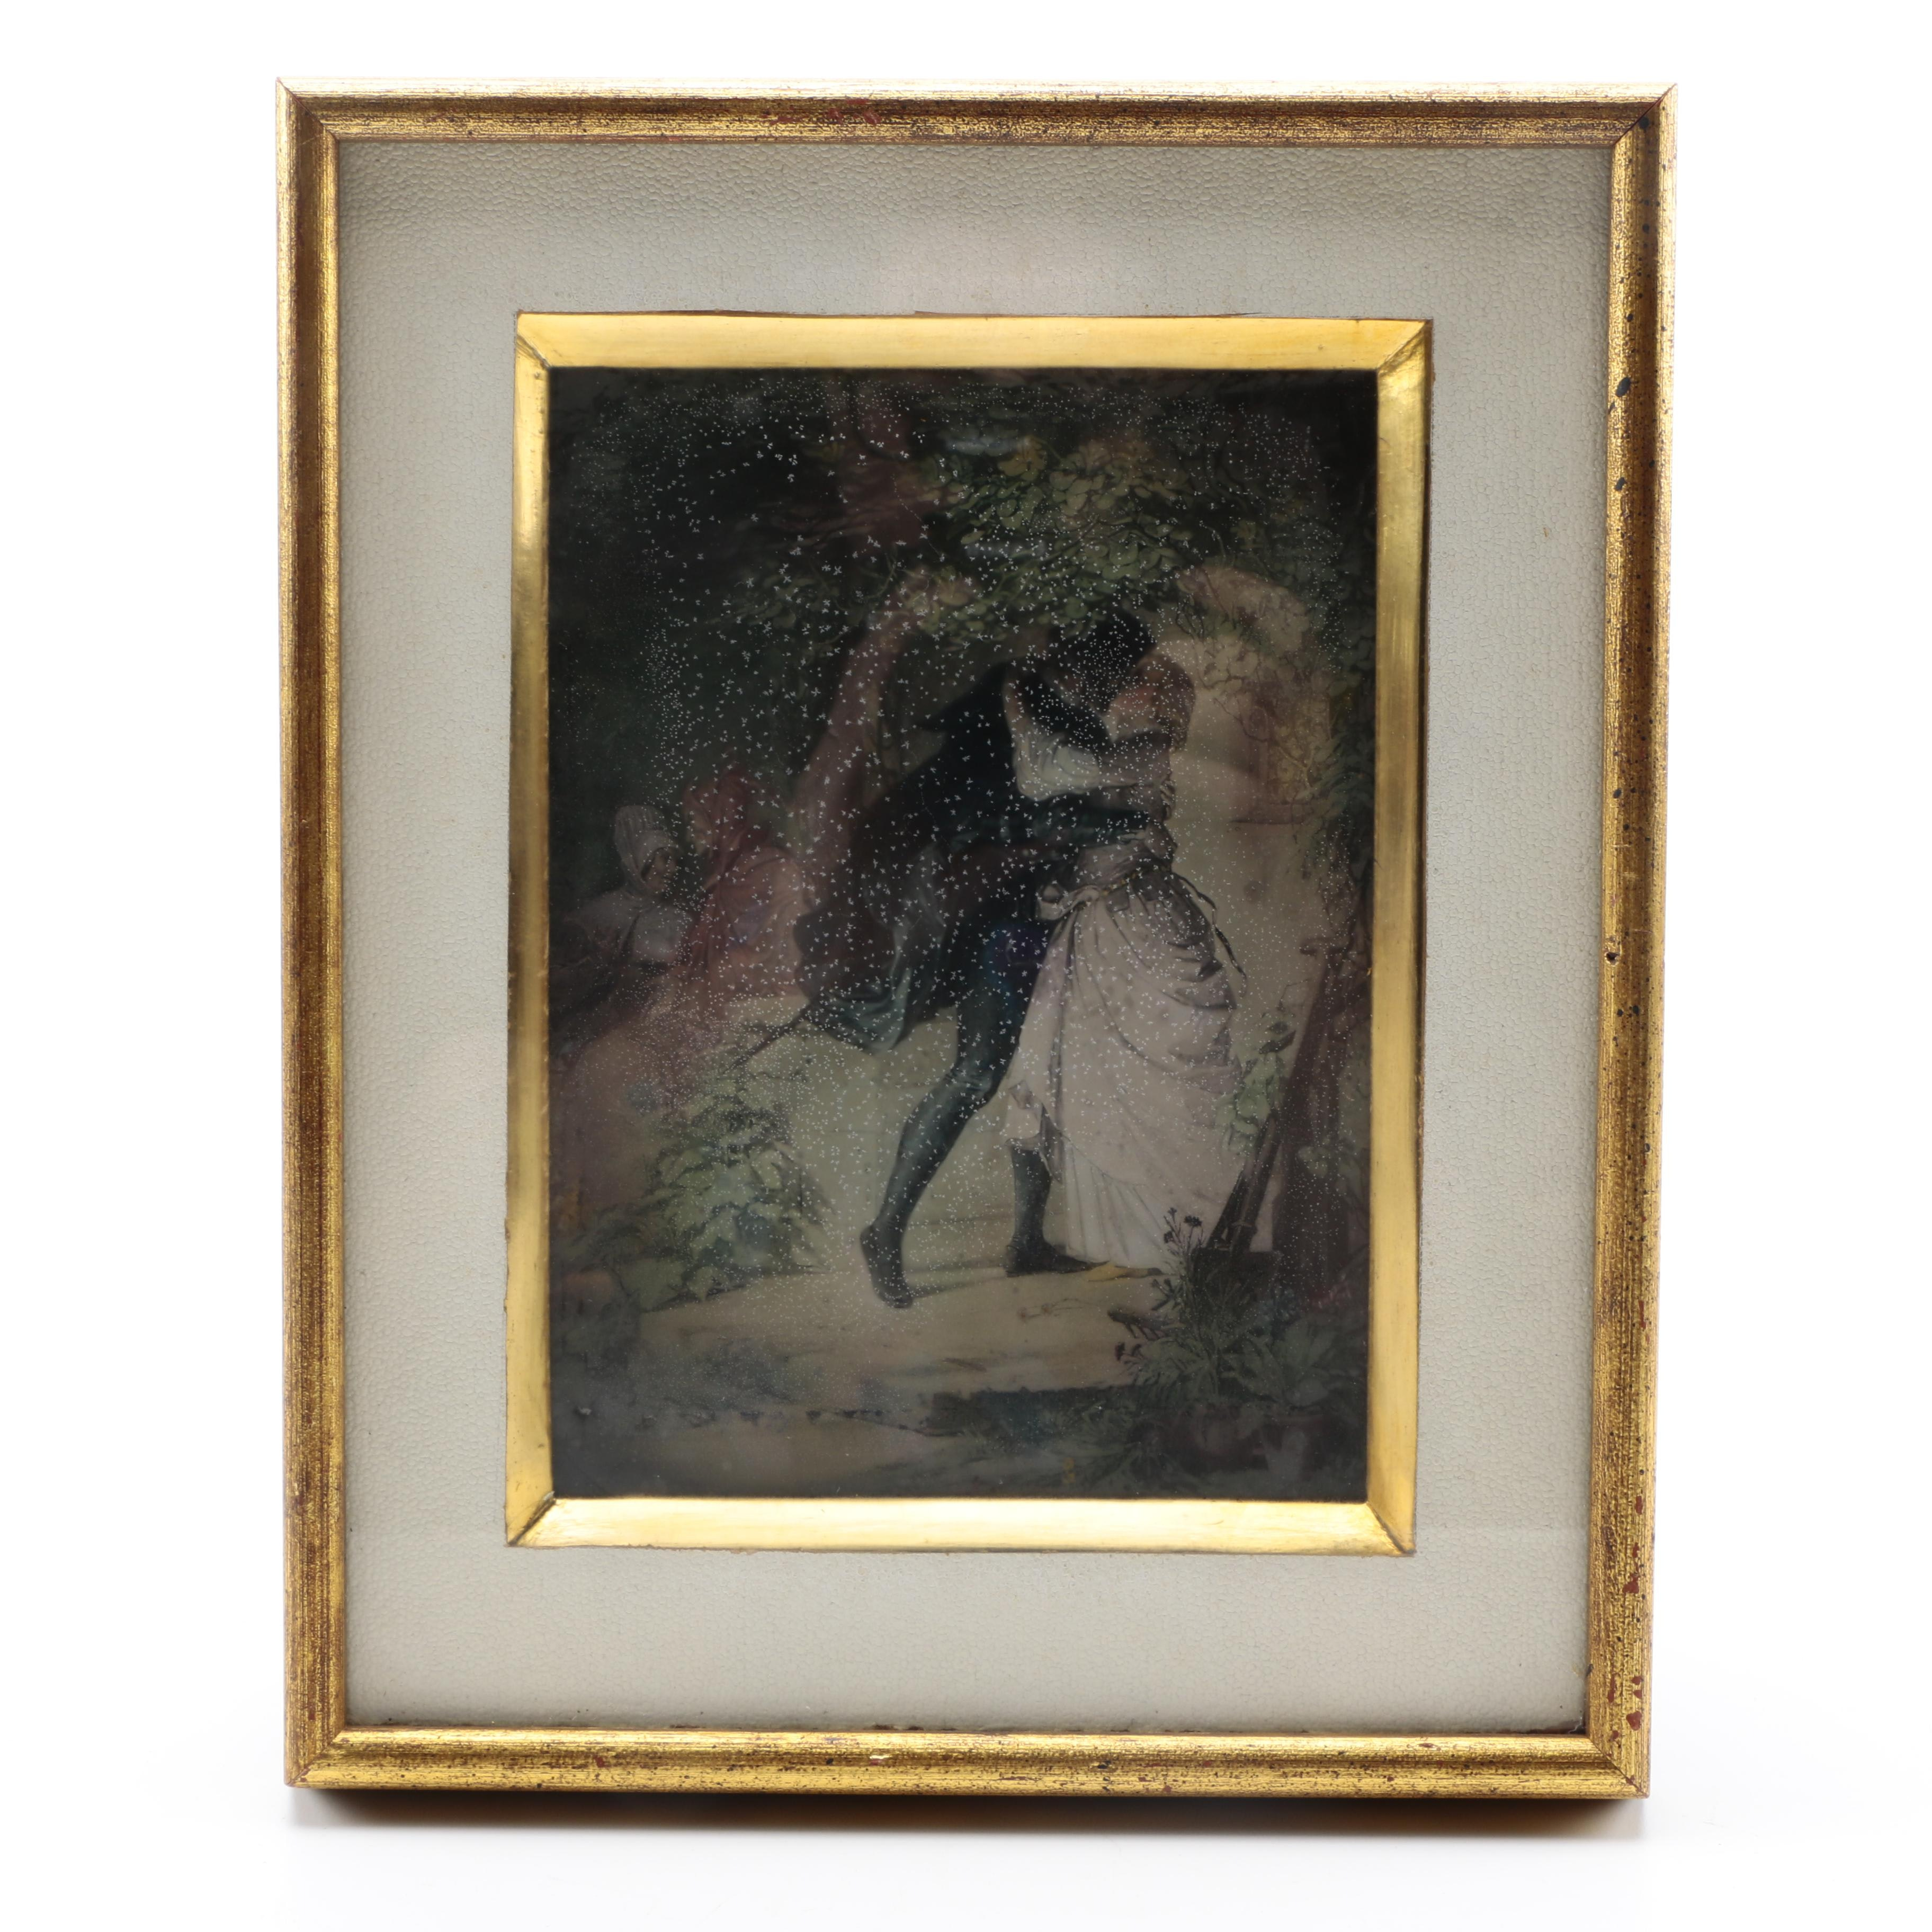 Lithograph on Paper After 19th Century Courtship Scene